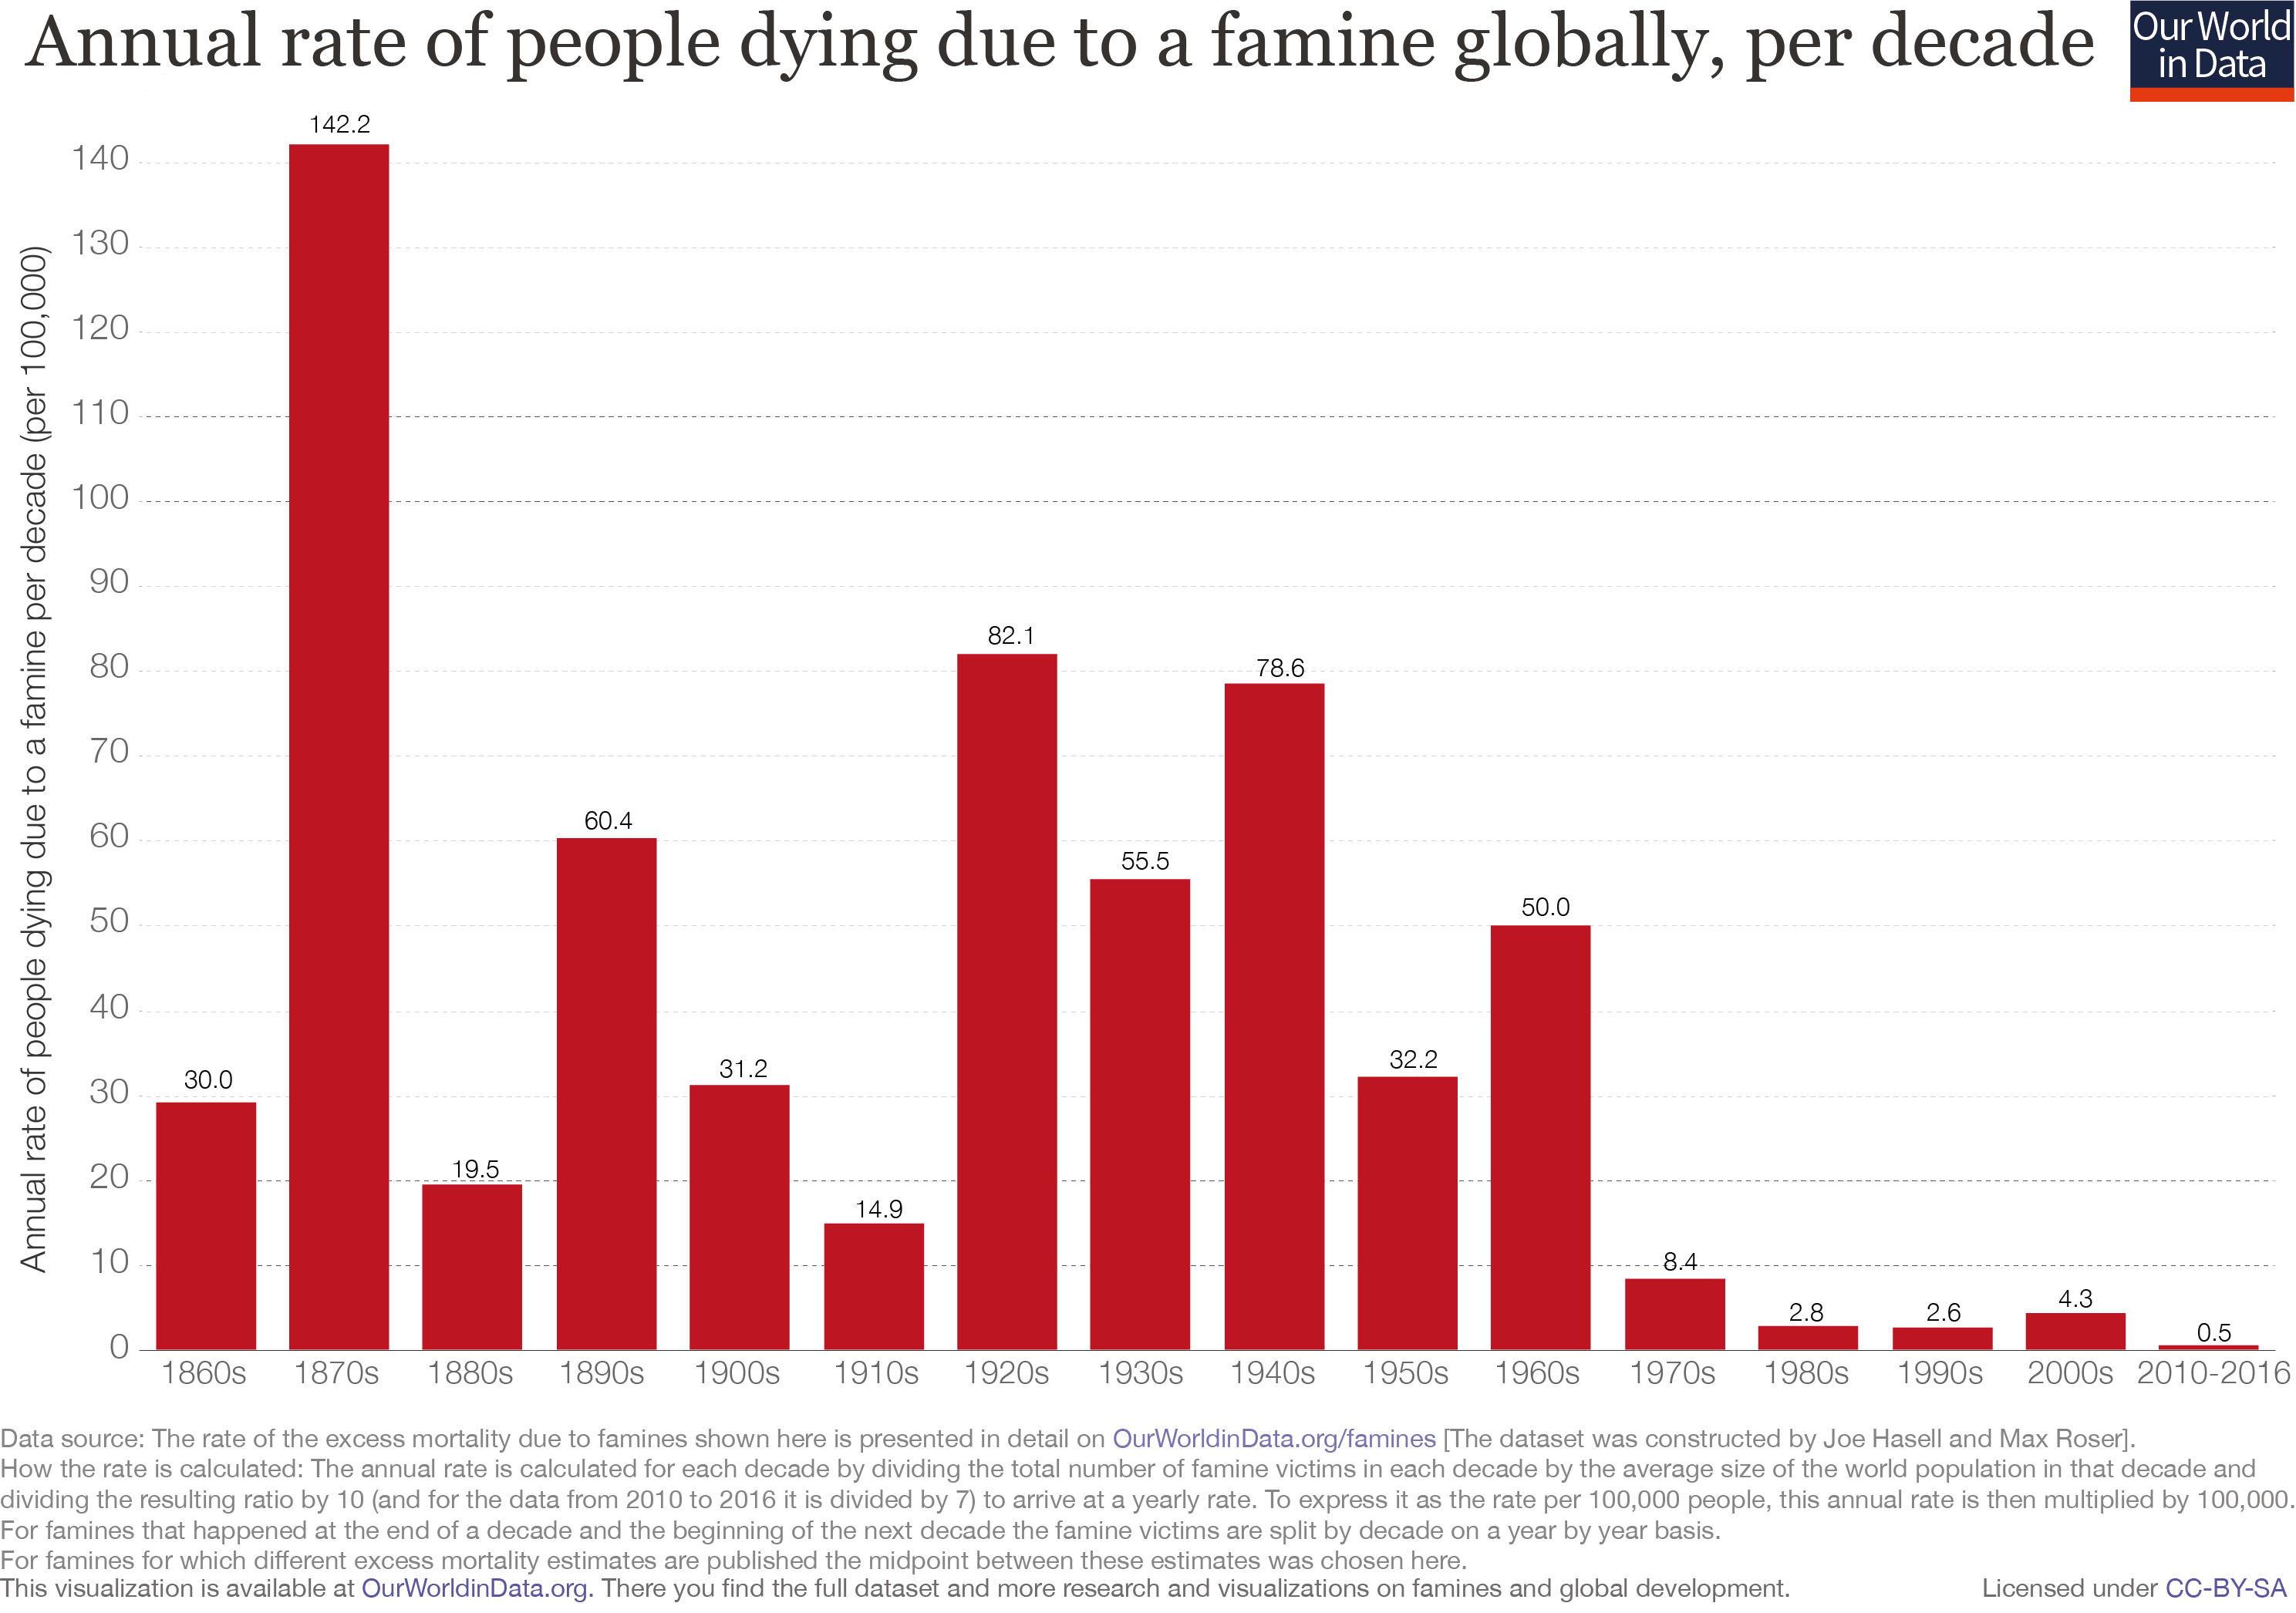 Famine death rate since 1860